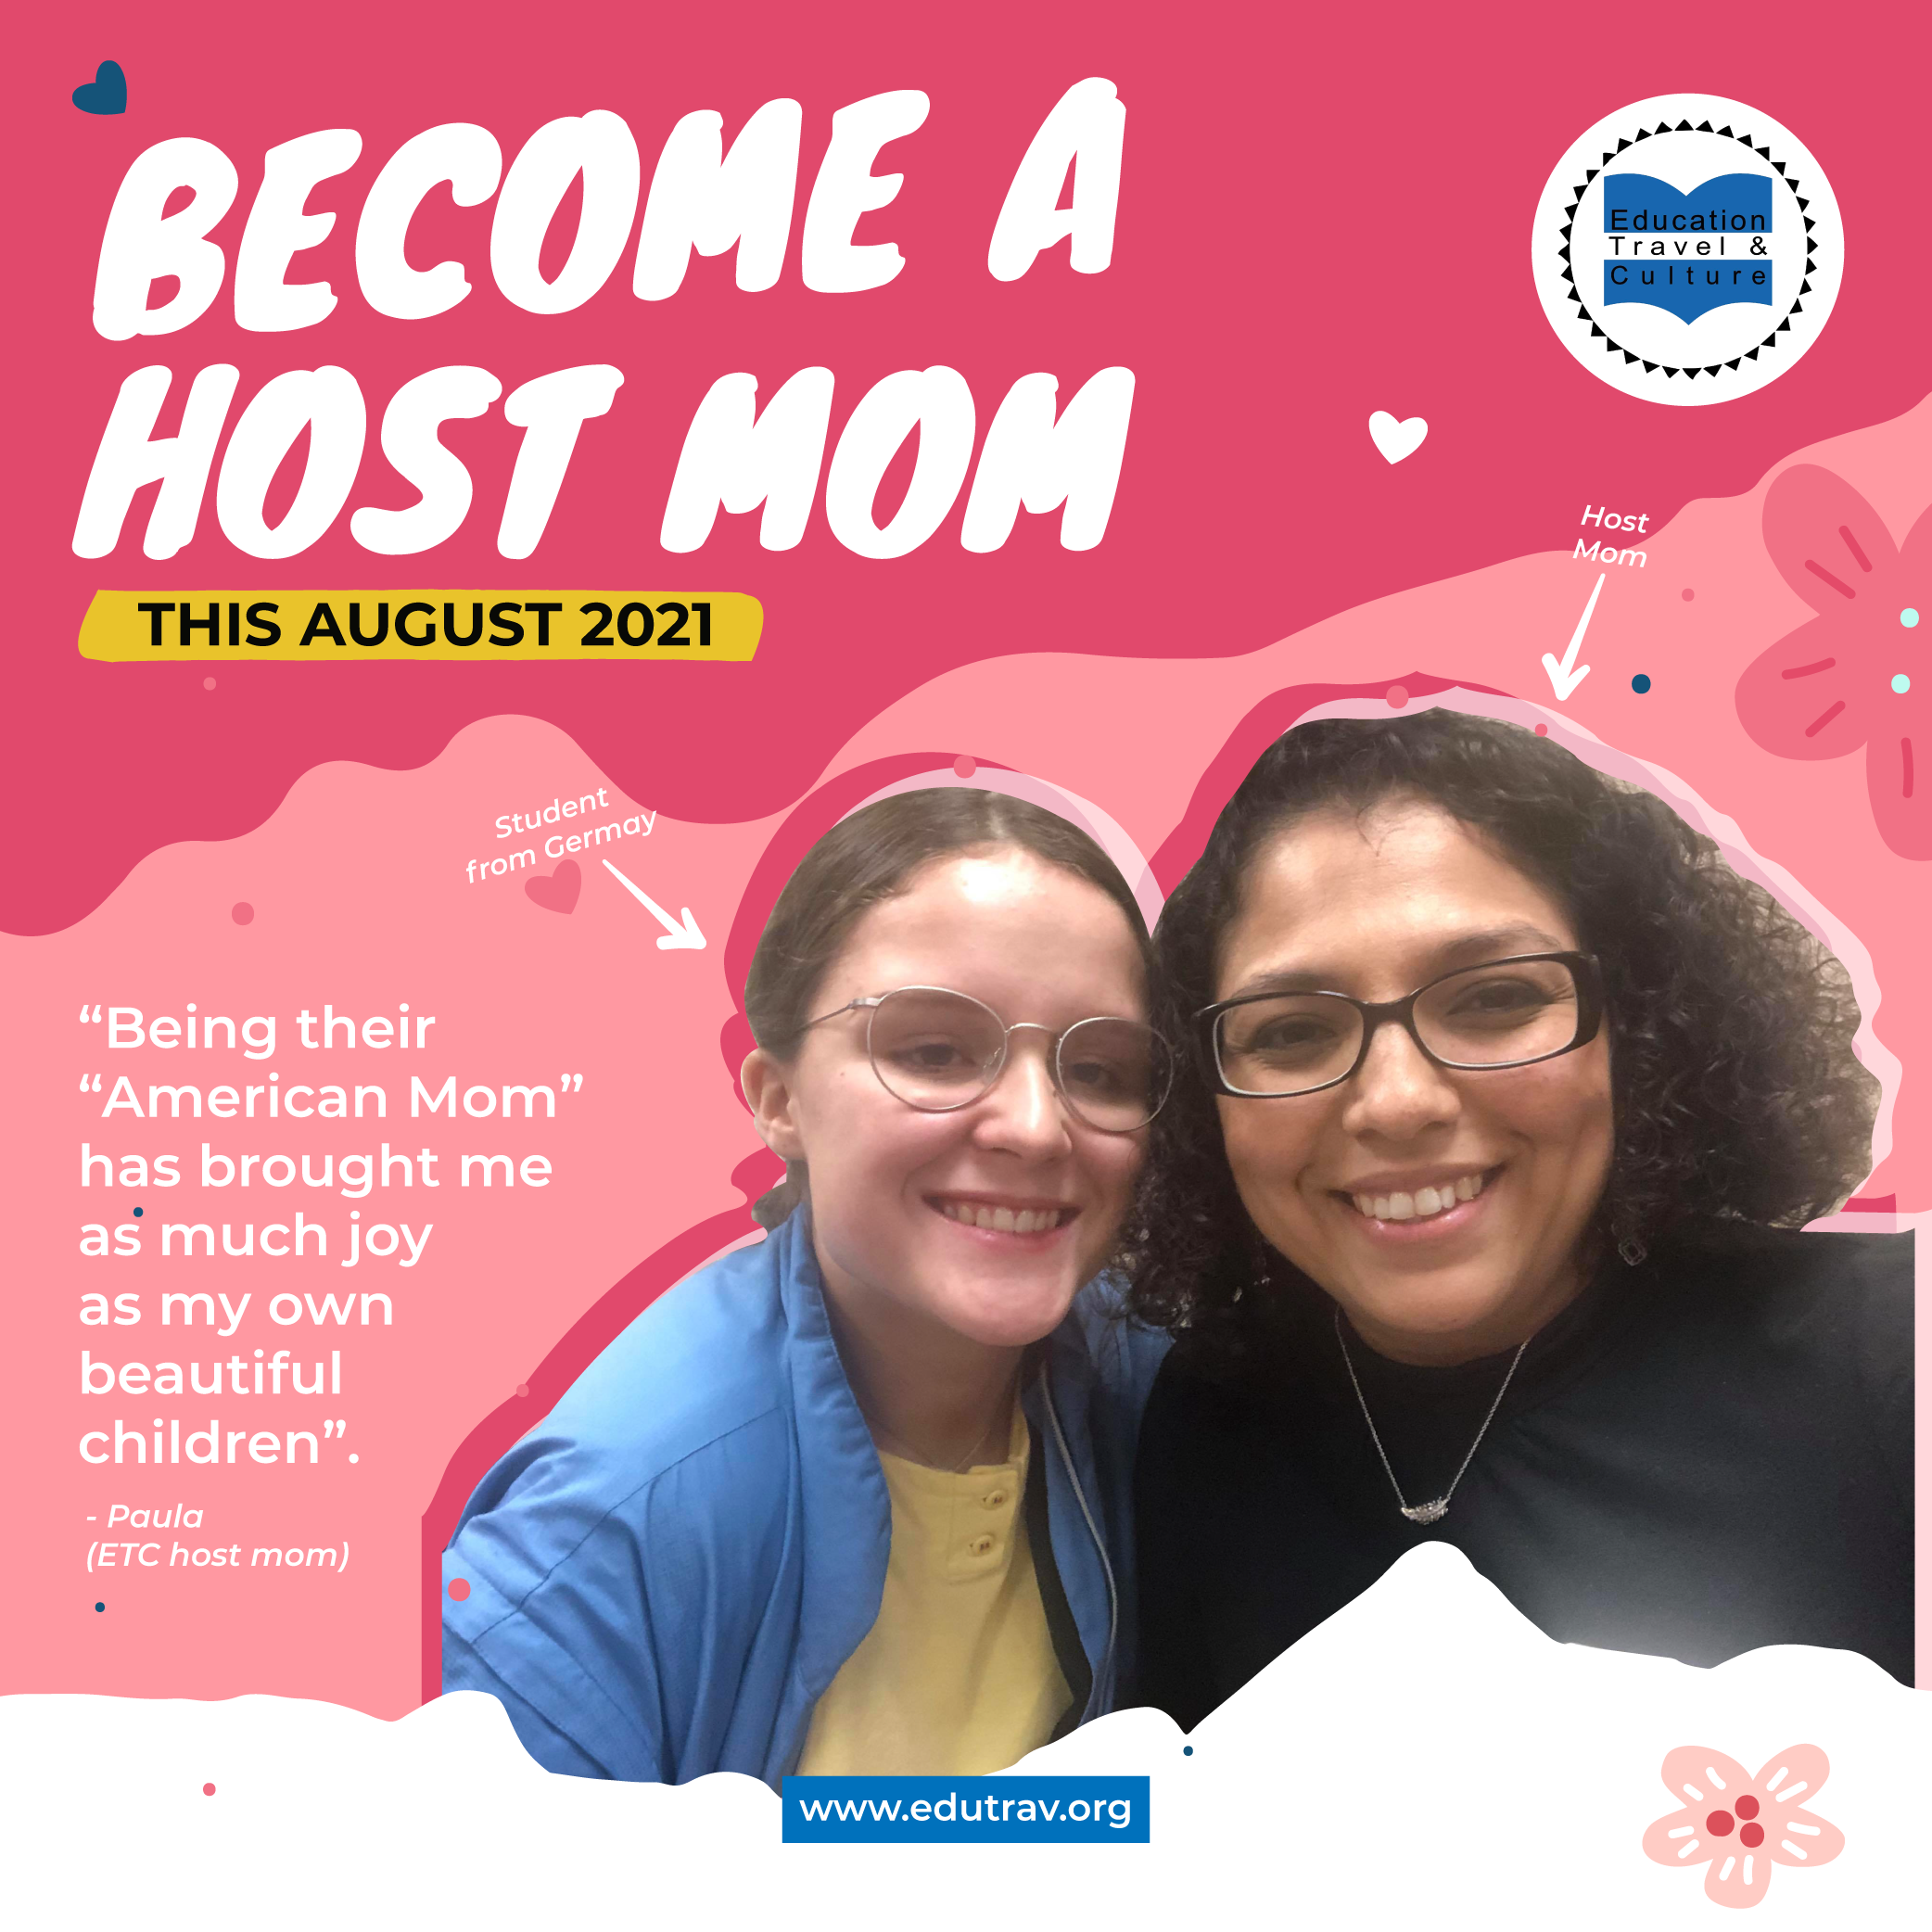 ETC Students Celebrate Their Host Moms for Mother's Day 2021